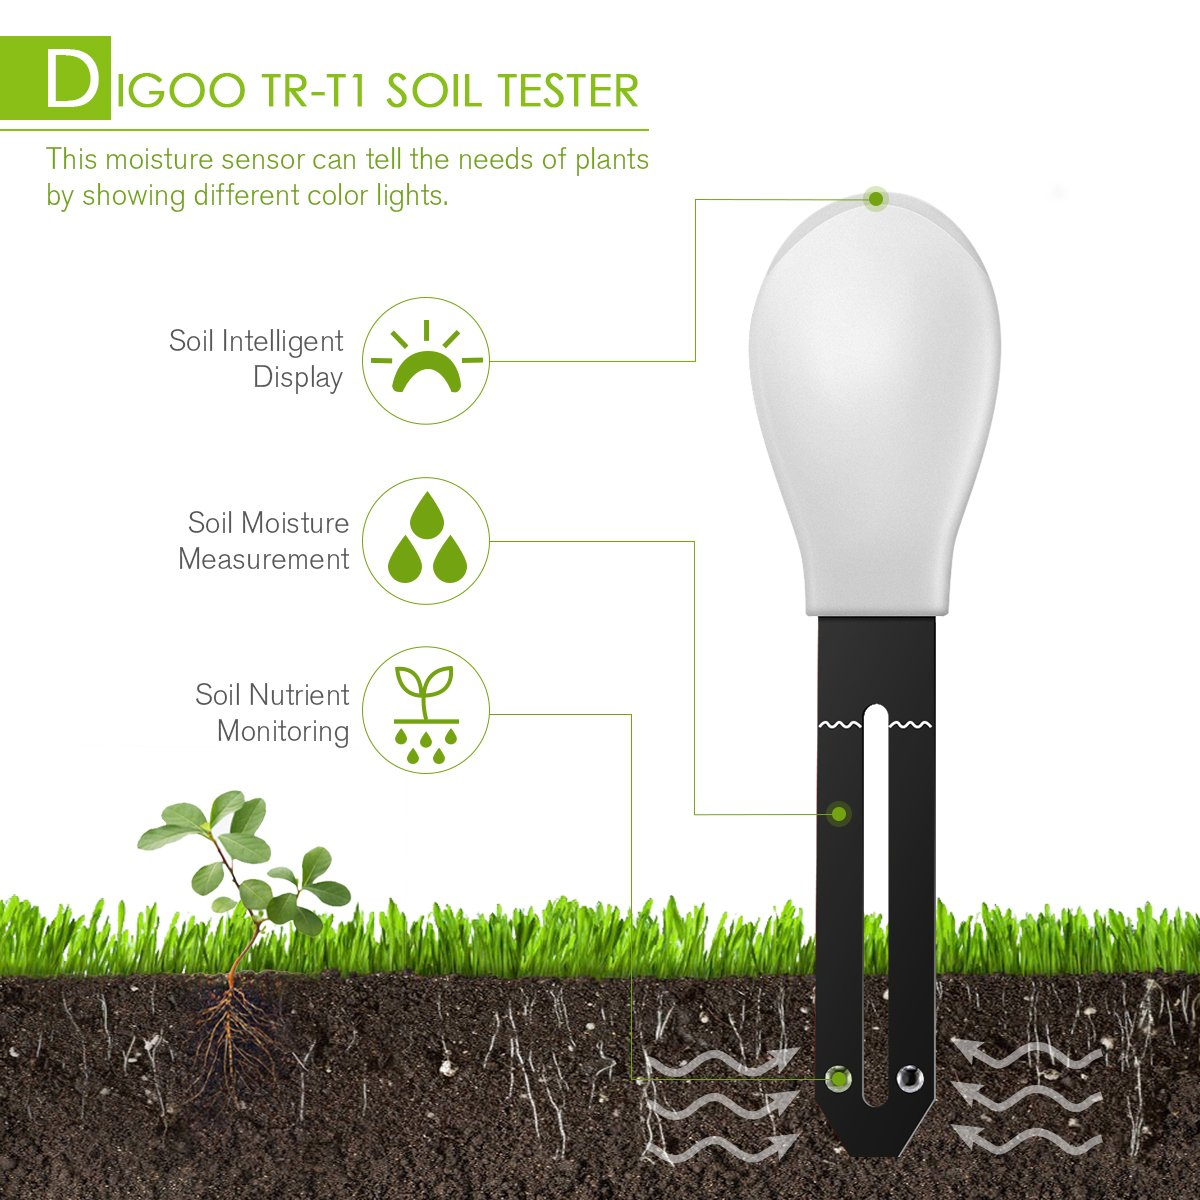 DIGOO DG-TRT1 3 in 1 Soil Tester Moisture Meter, Garden Potted Intelligent Plant Detector, Nutrient Monitor Light Tester White by DIGOO (Image #4)